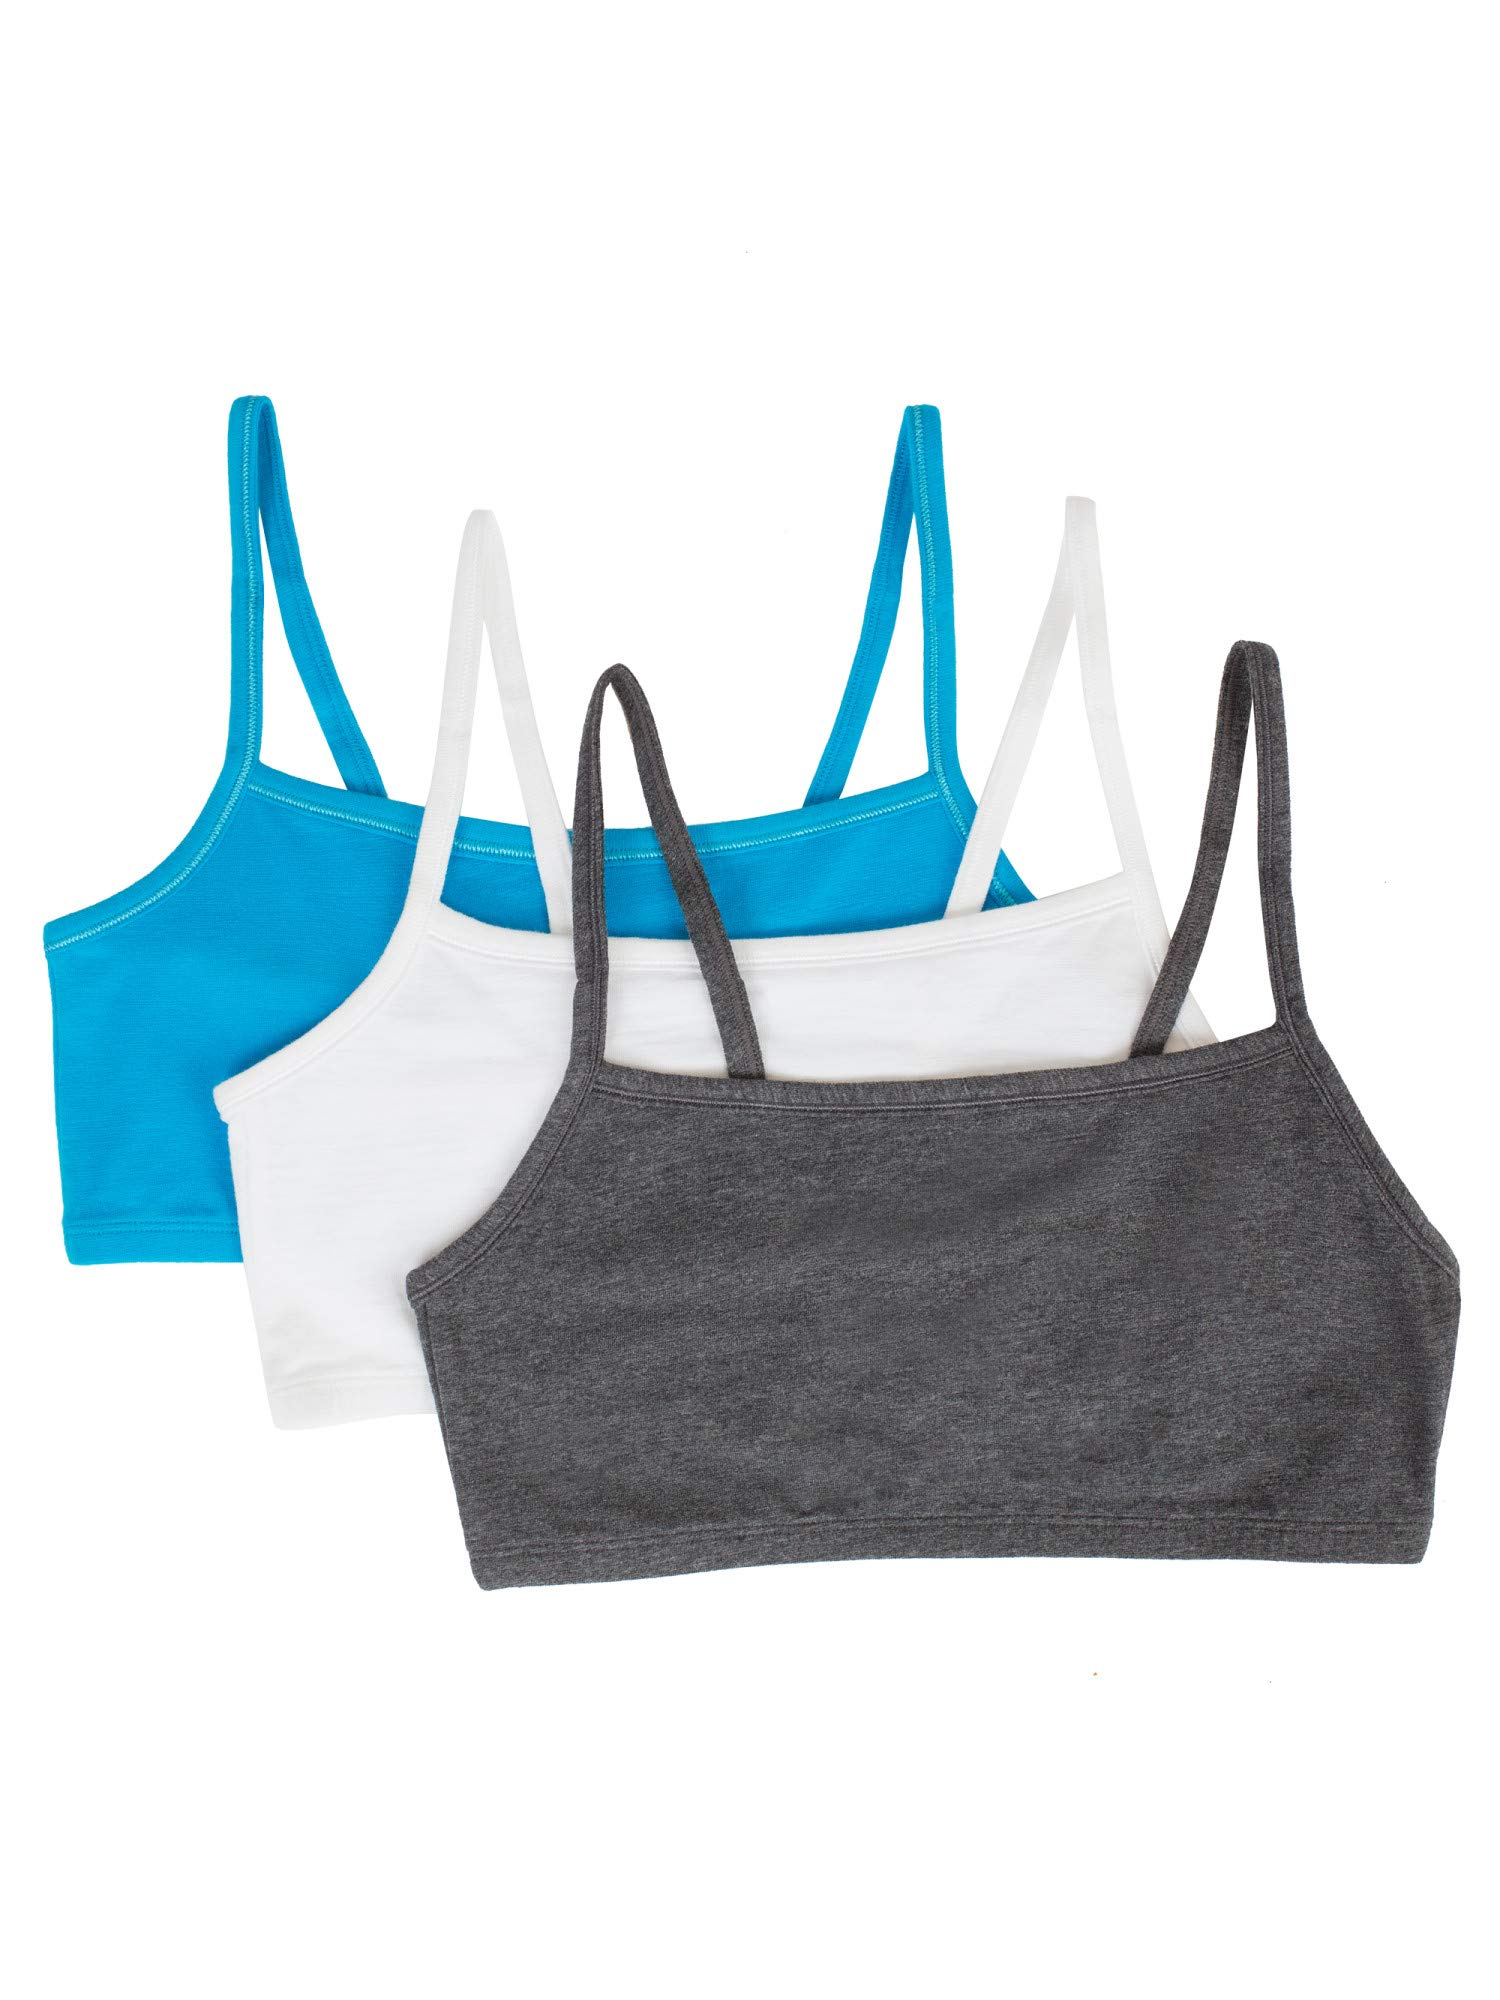 Fruit of the Loom Women's Cotton Pullover Sport Bra, Charcoal Heather White/ISAZURE-3 Pack, 38 by Fruit of the Loom